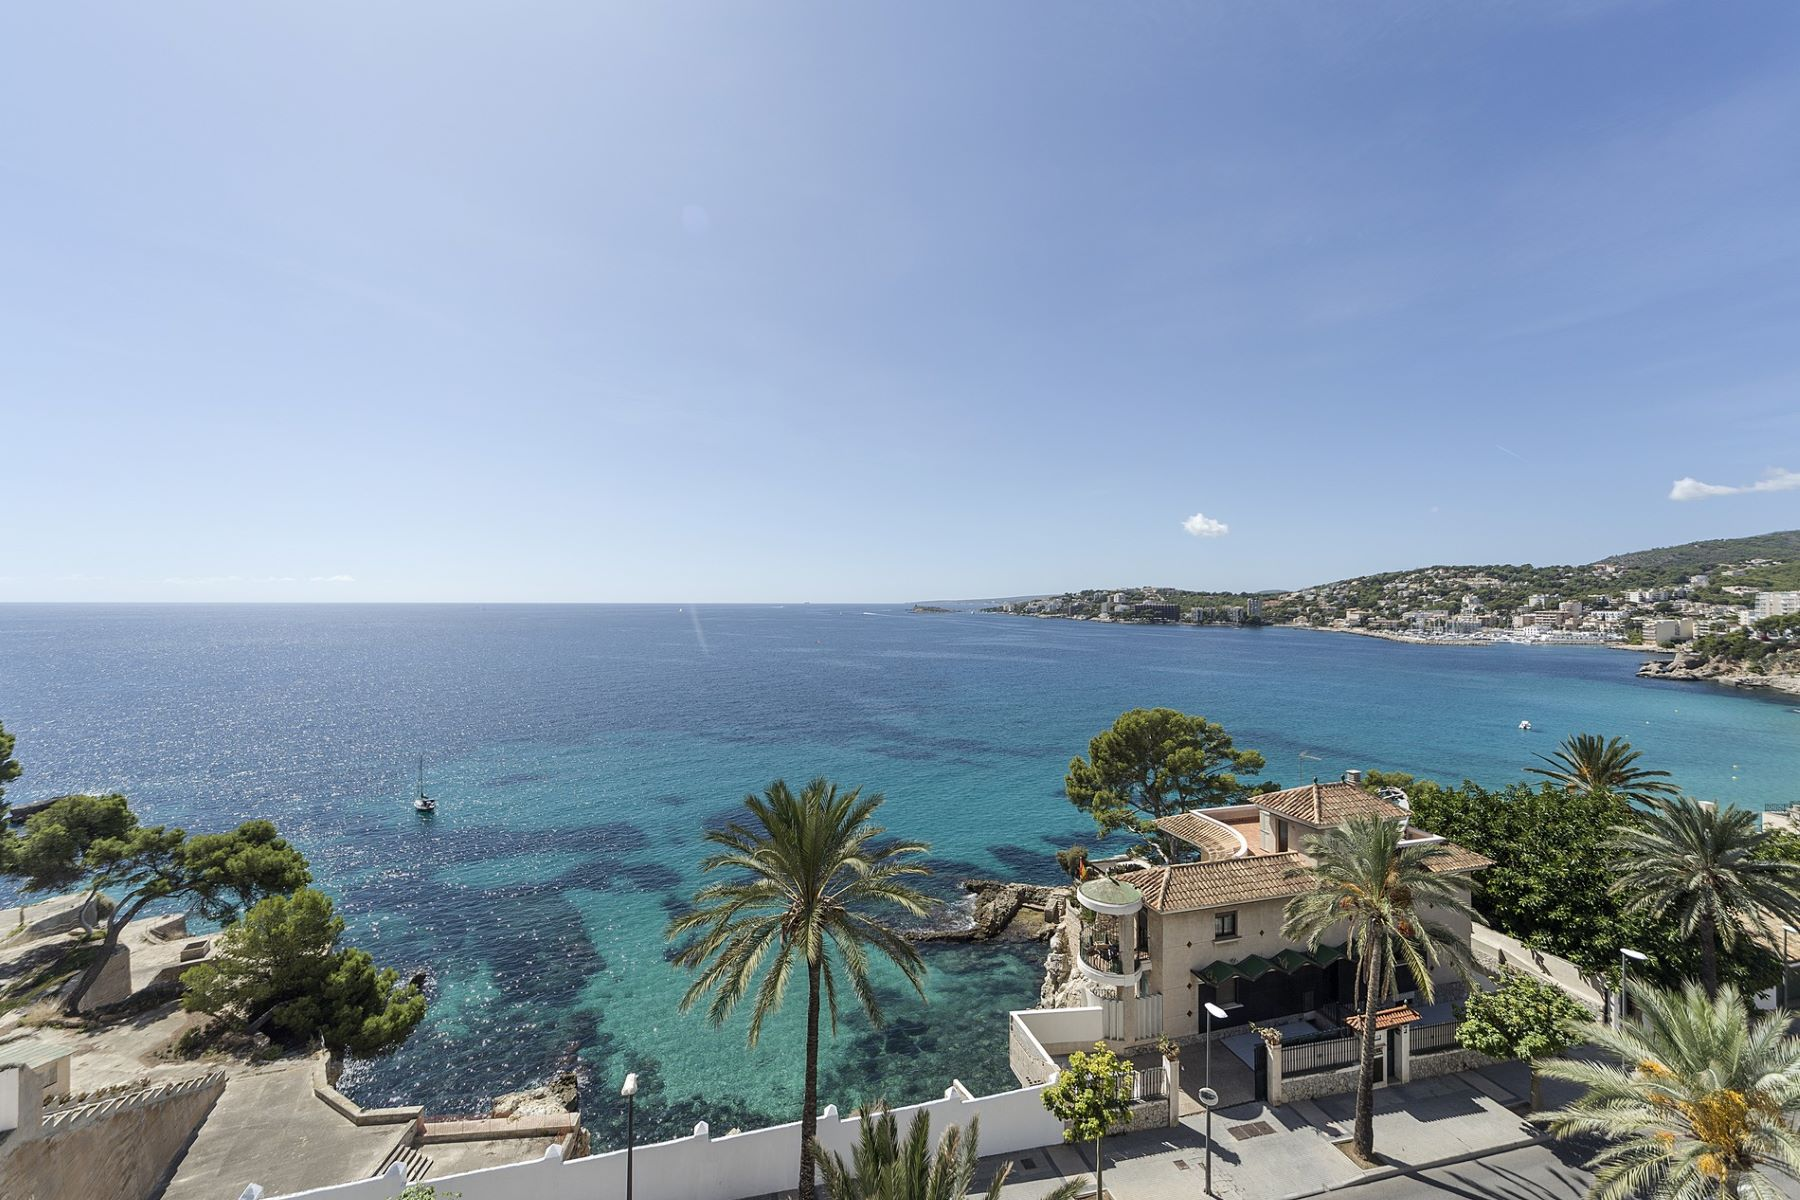 Single Family Home for Sale at Property with spectacular views to the sea Other Balearic Islands, Balearic Islands, Spain